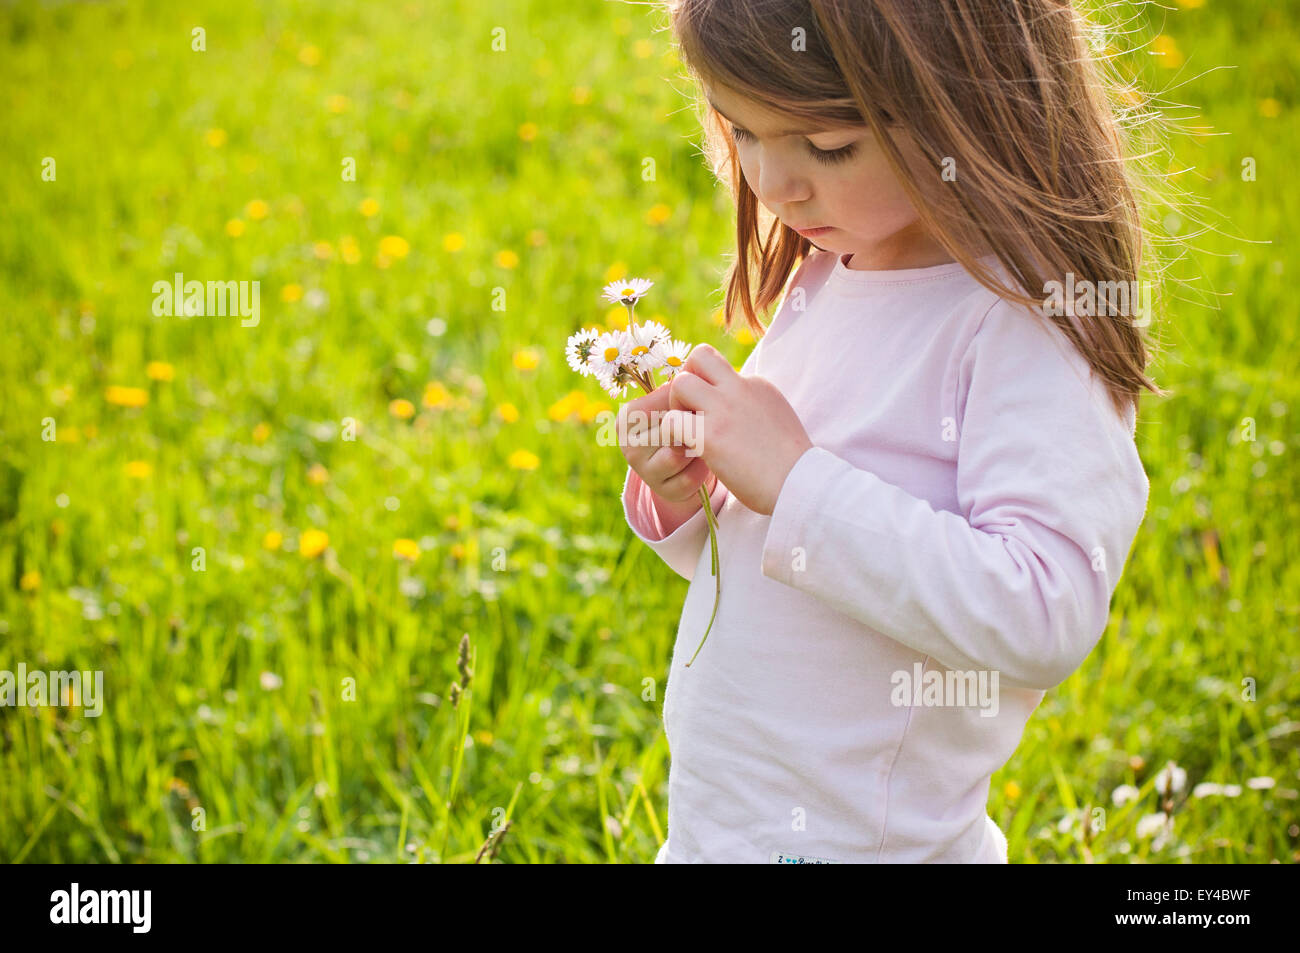 Young Girl in Field Looking at Daisies in Her Hands - Stock Image